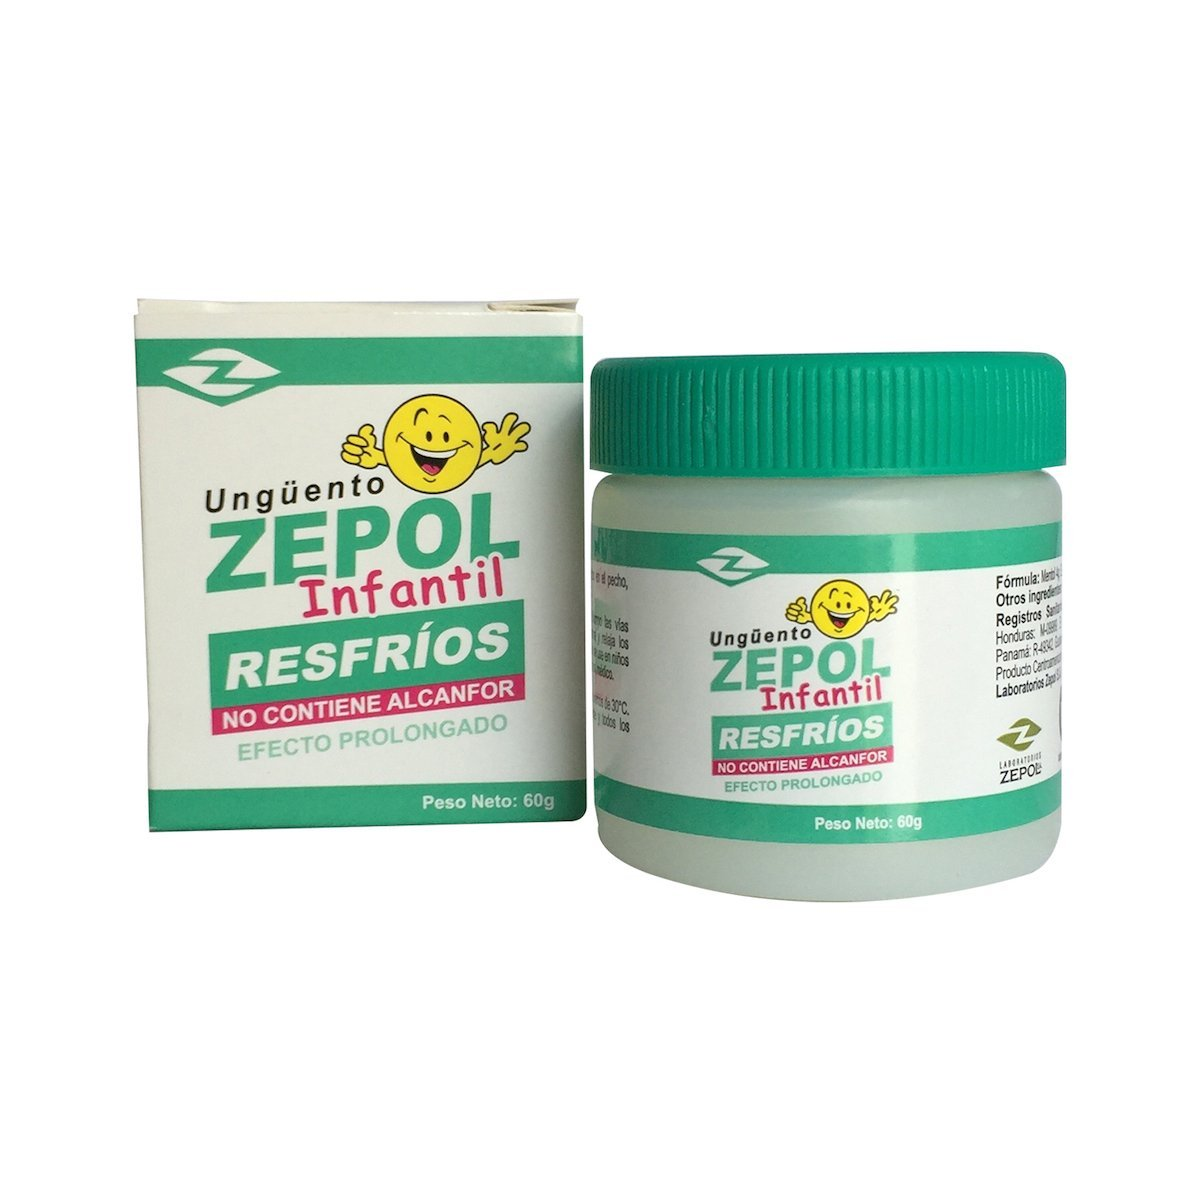 Zepol Ointment Children Colds - 2.1 Oz - 2 Pack by Zepol